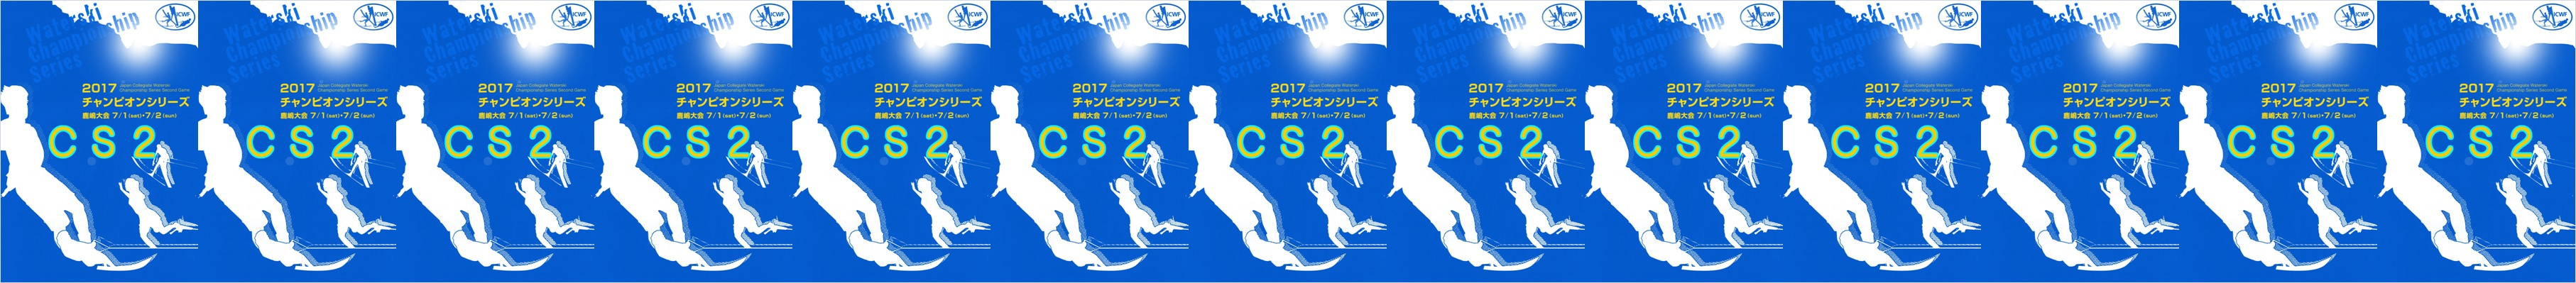 2017CS2 Men's Title_001